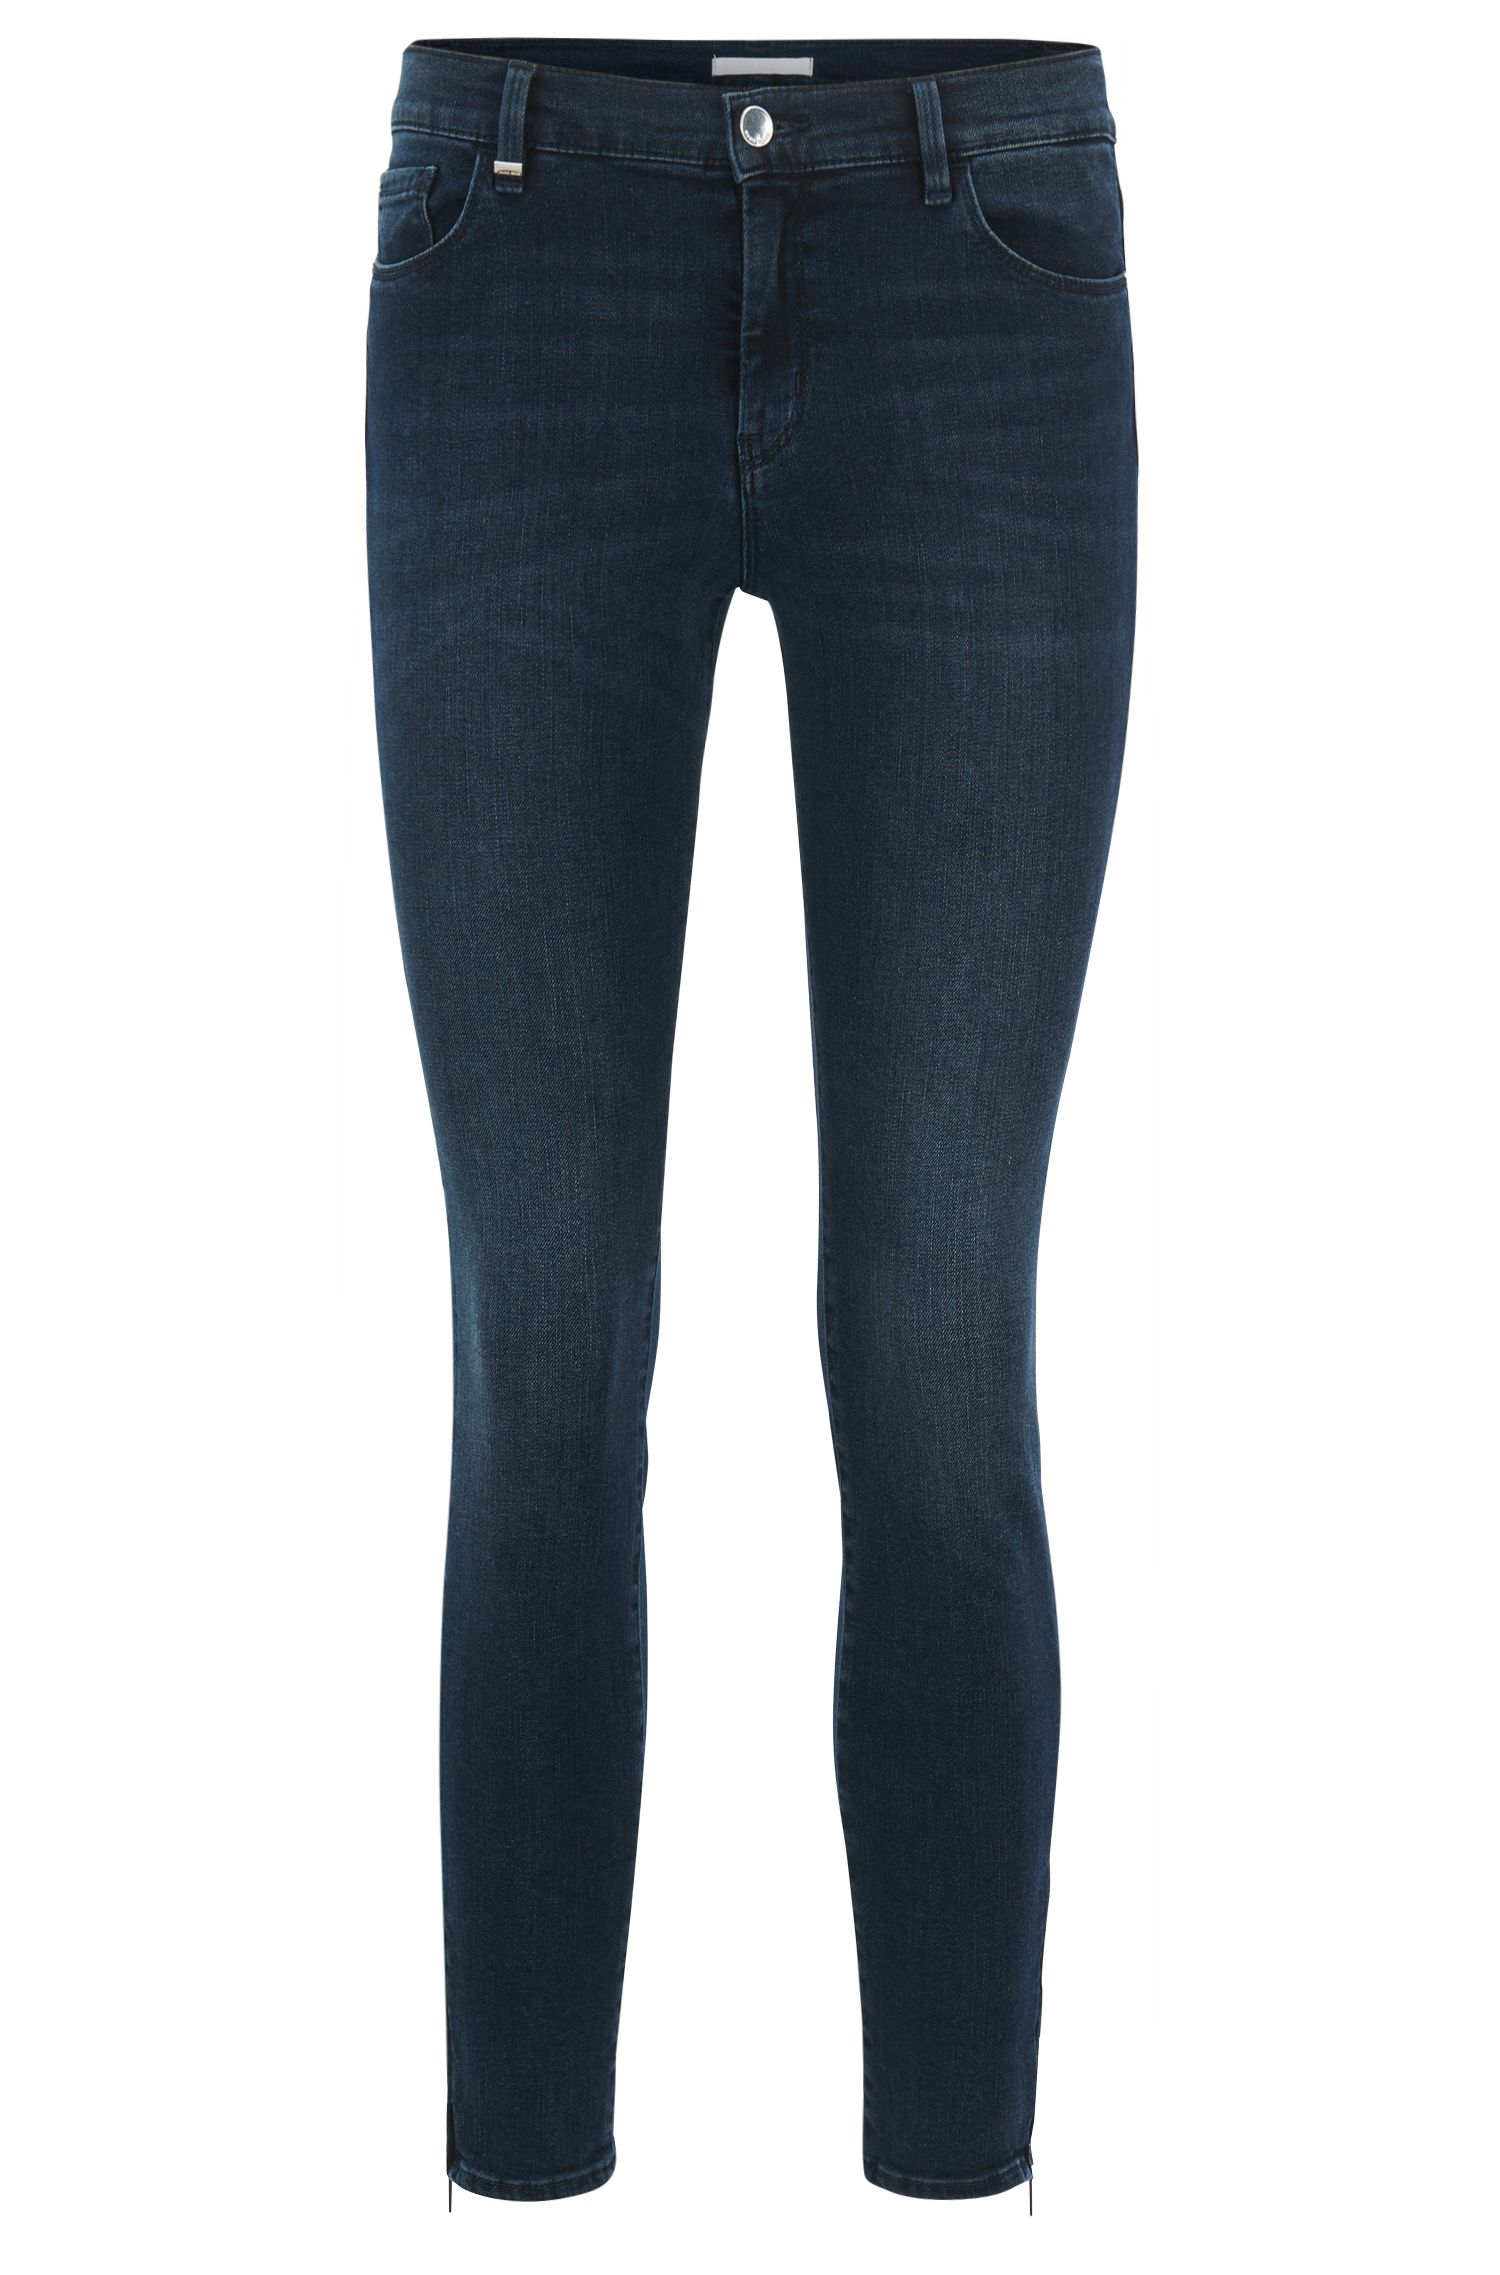 Jeans slim fit in denim super-elasticizzato con zip sul fondo gamba, Blu scuro